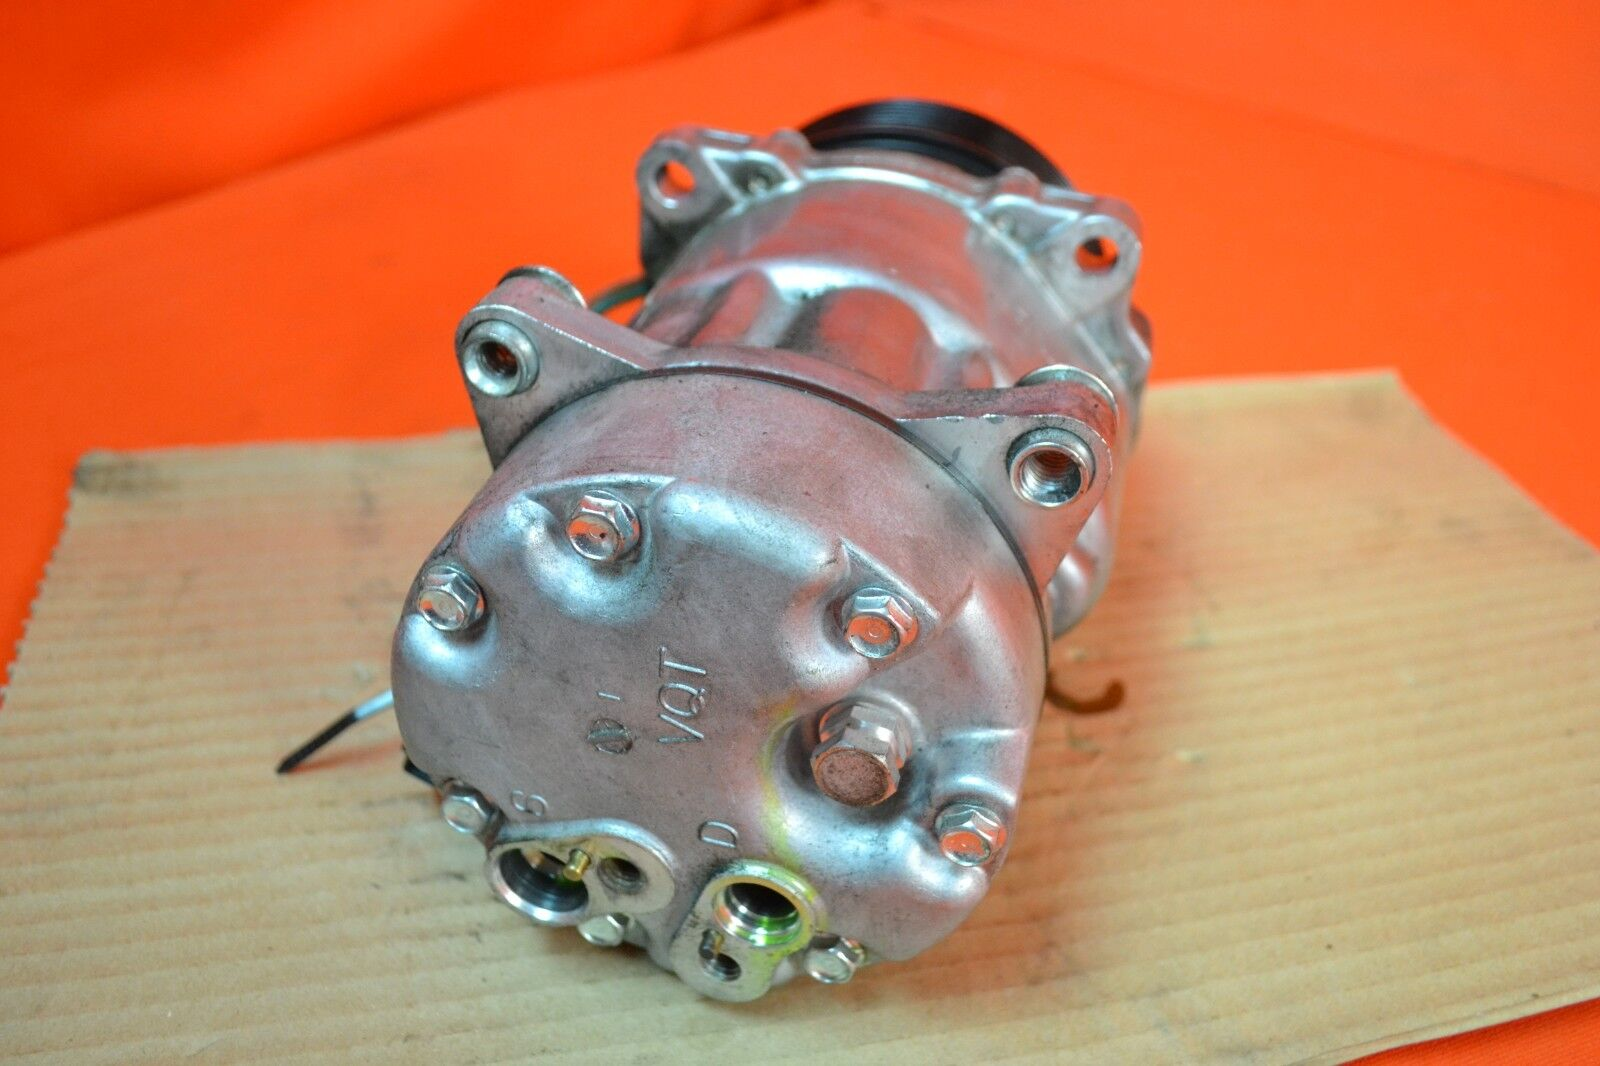 Used Volkswagen Eurovan A C Compressors And Clutches For Sale 1999 Vw Ac Wiring T4 Compressor 7d0 820 805e